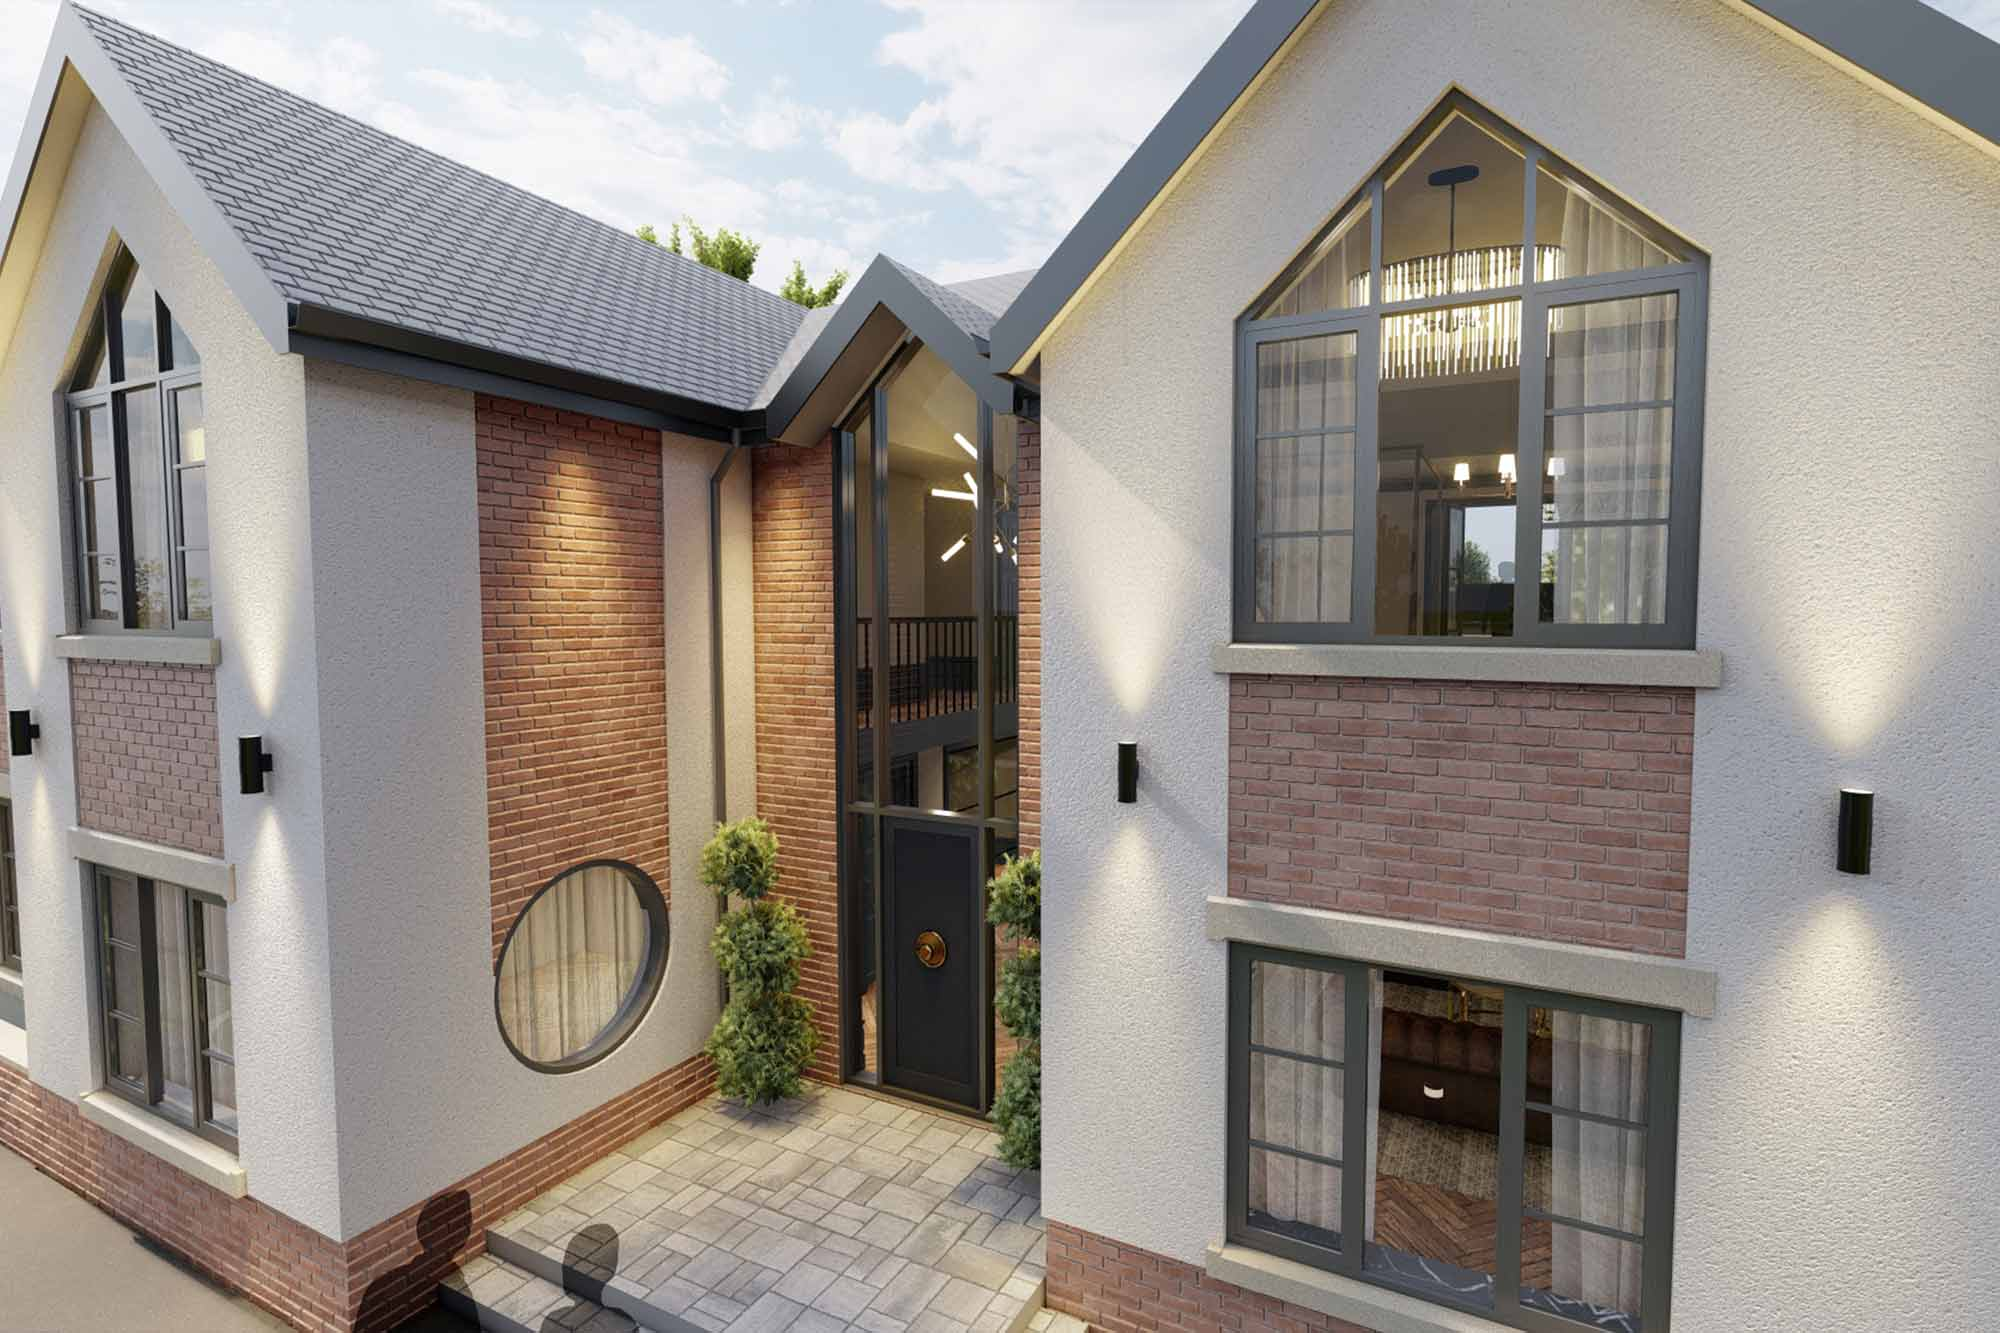 Contemporary house facelift with glazed feature entrance and apex windows